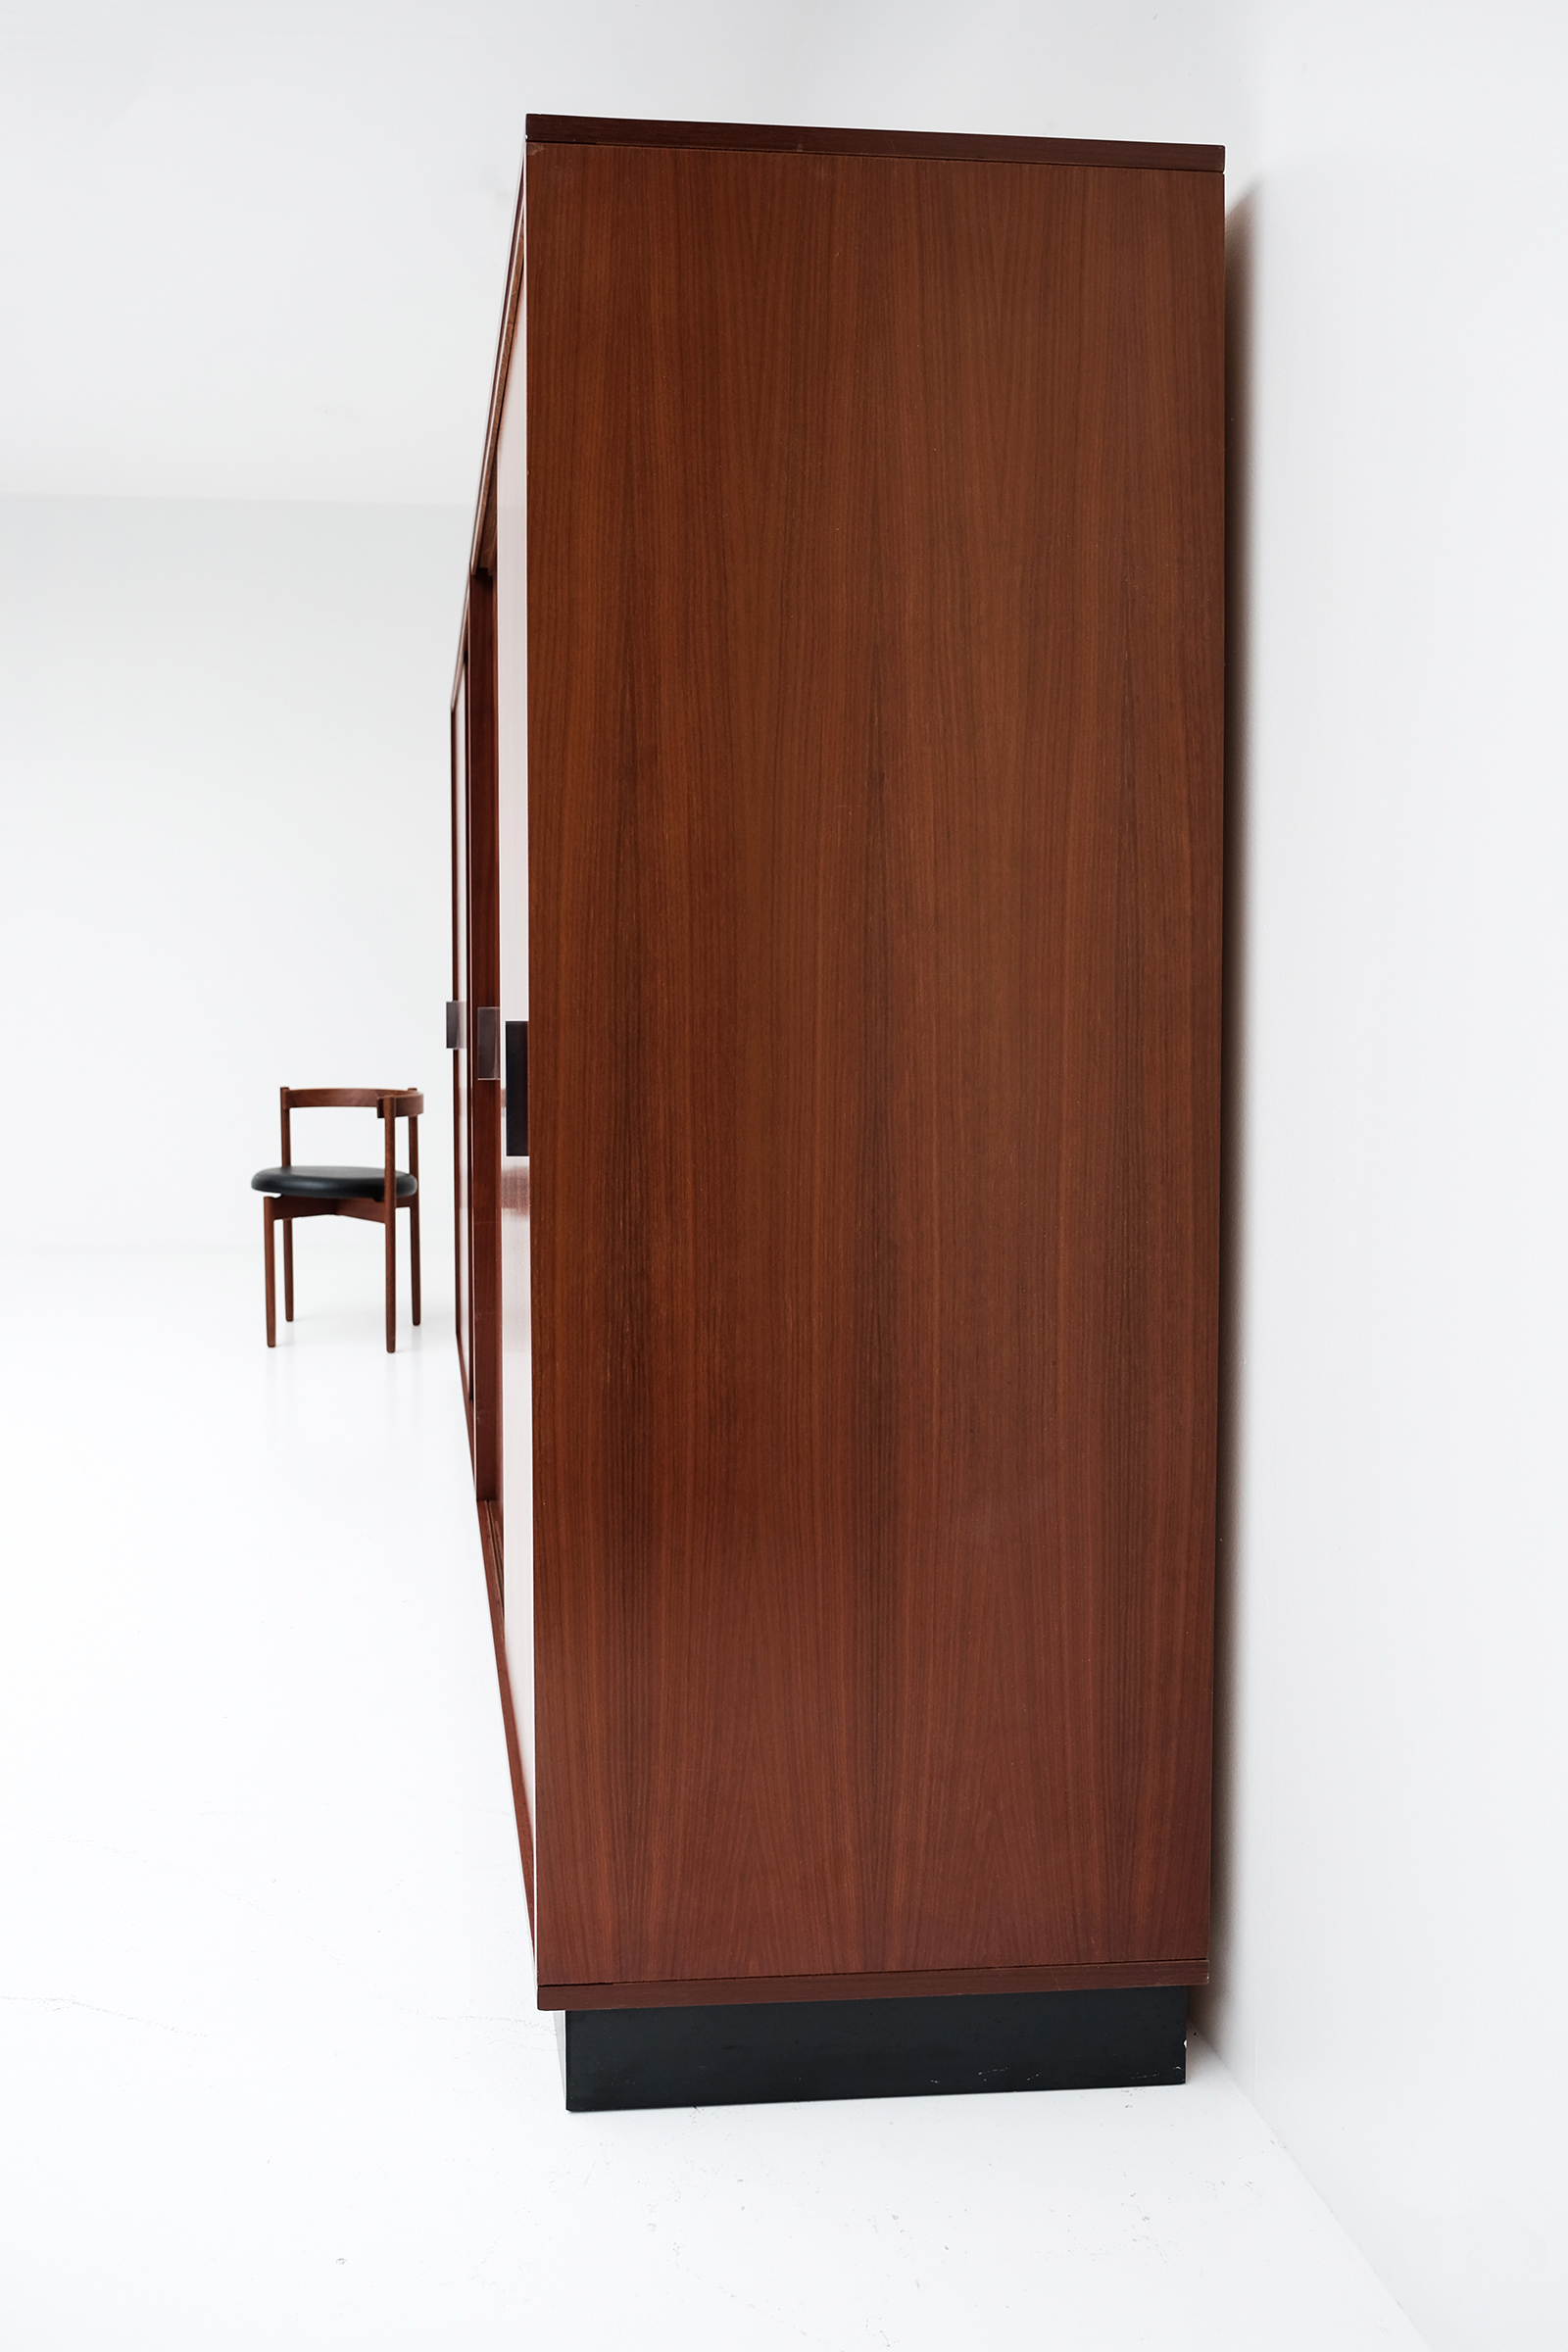 Alfred Hendrickx Wardrobe with Sliding Doorsimage 5